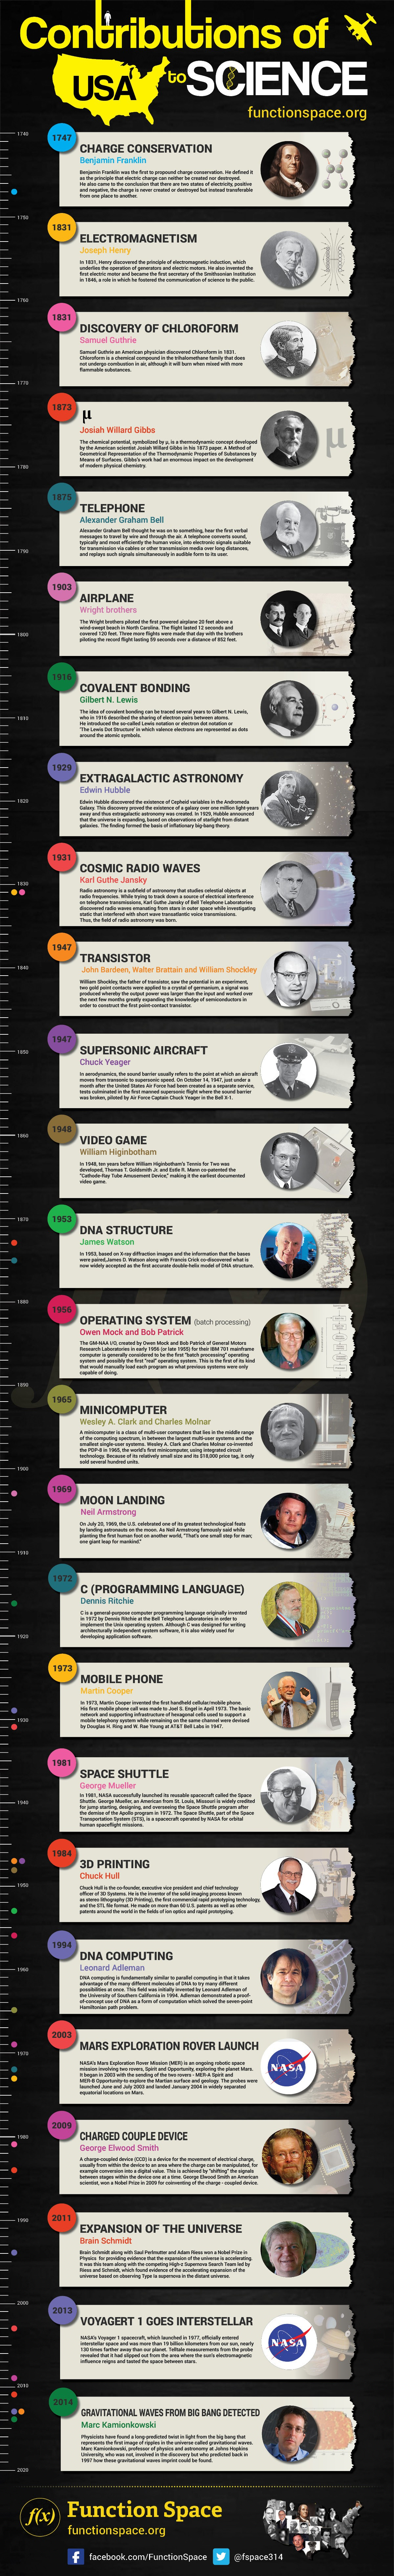 26 Glorious Things America Gave the World - Science Infographic